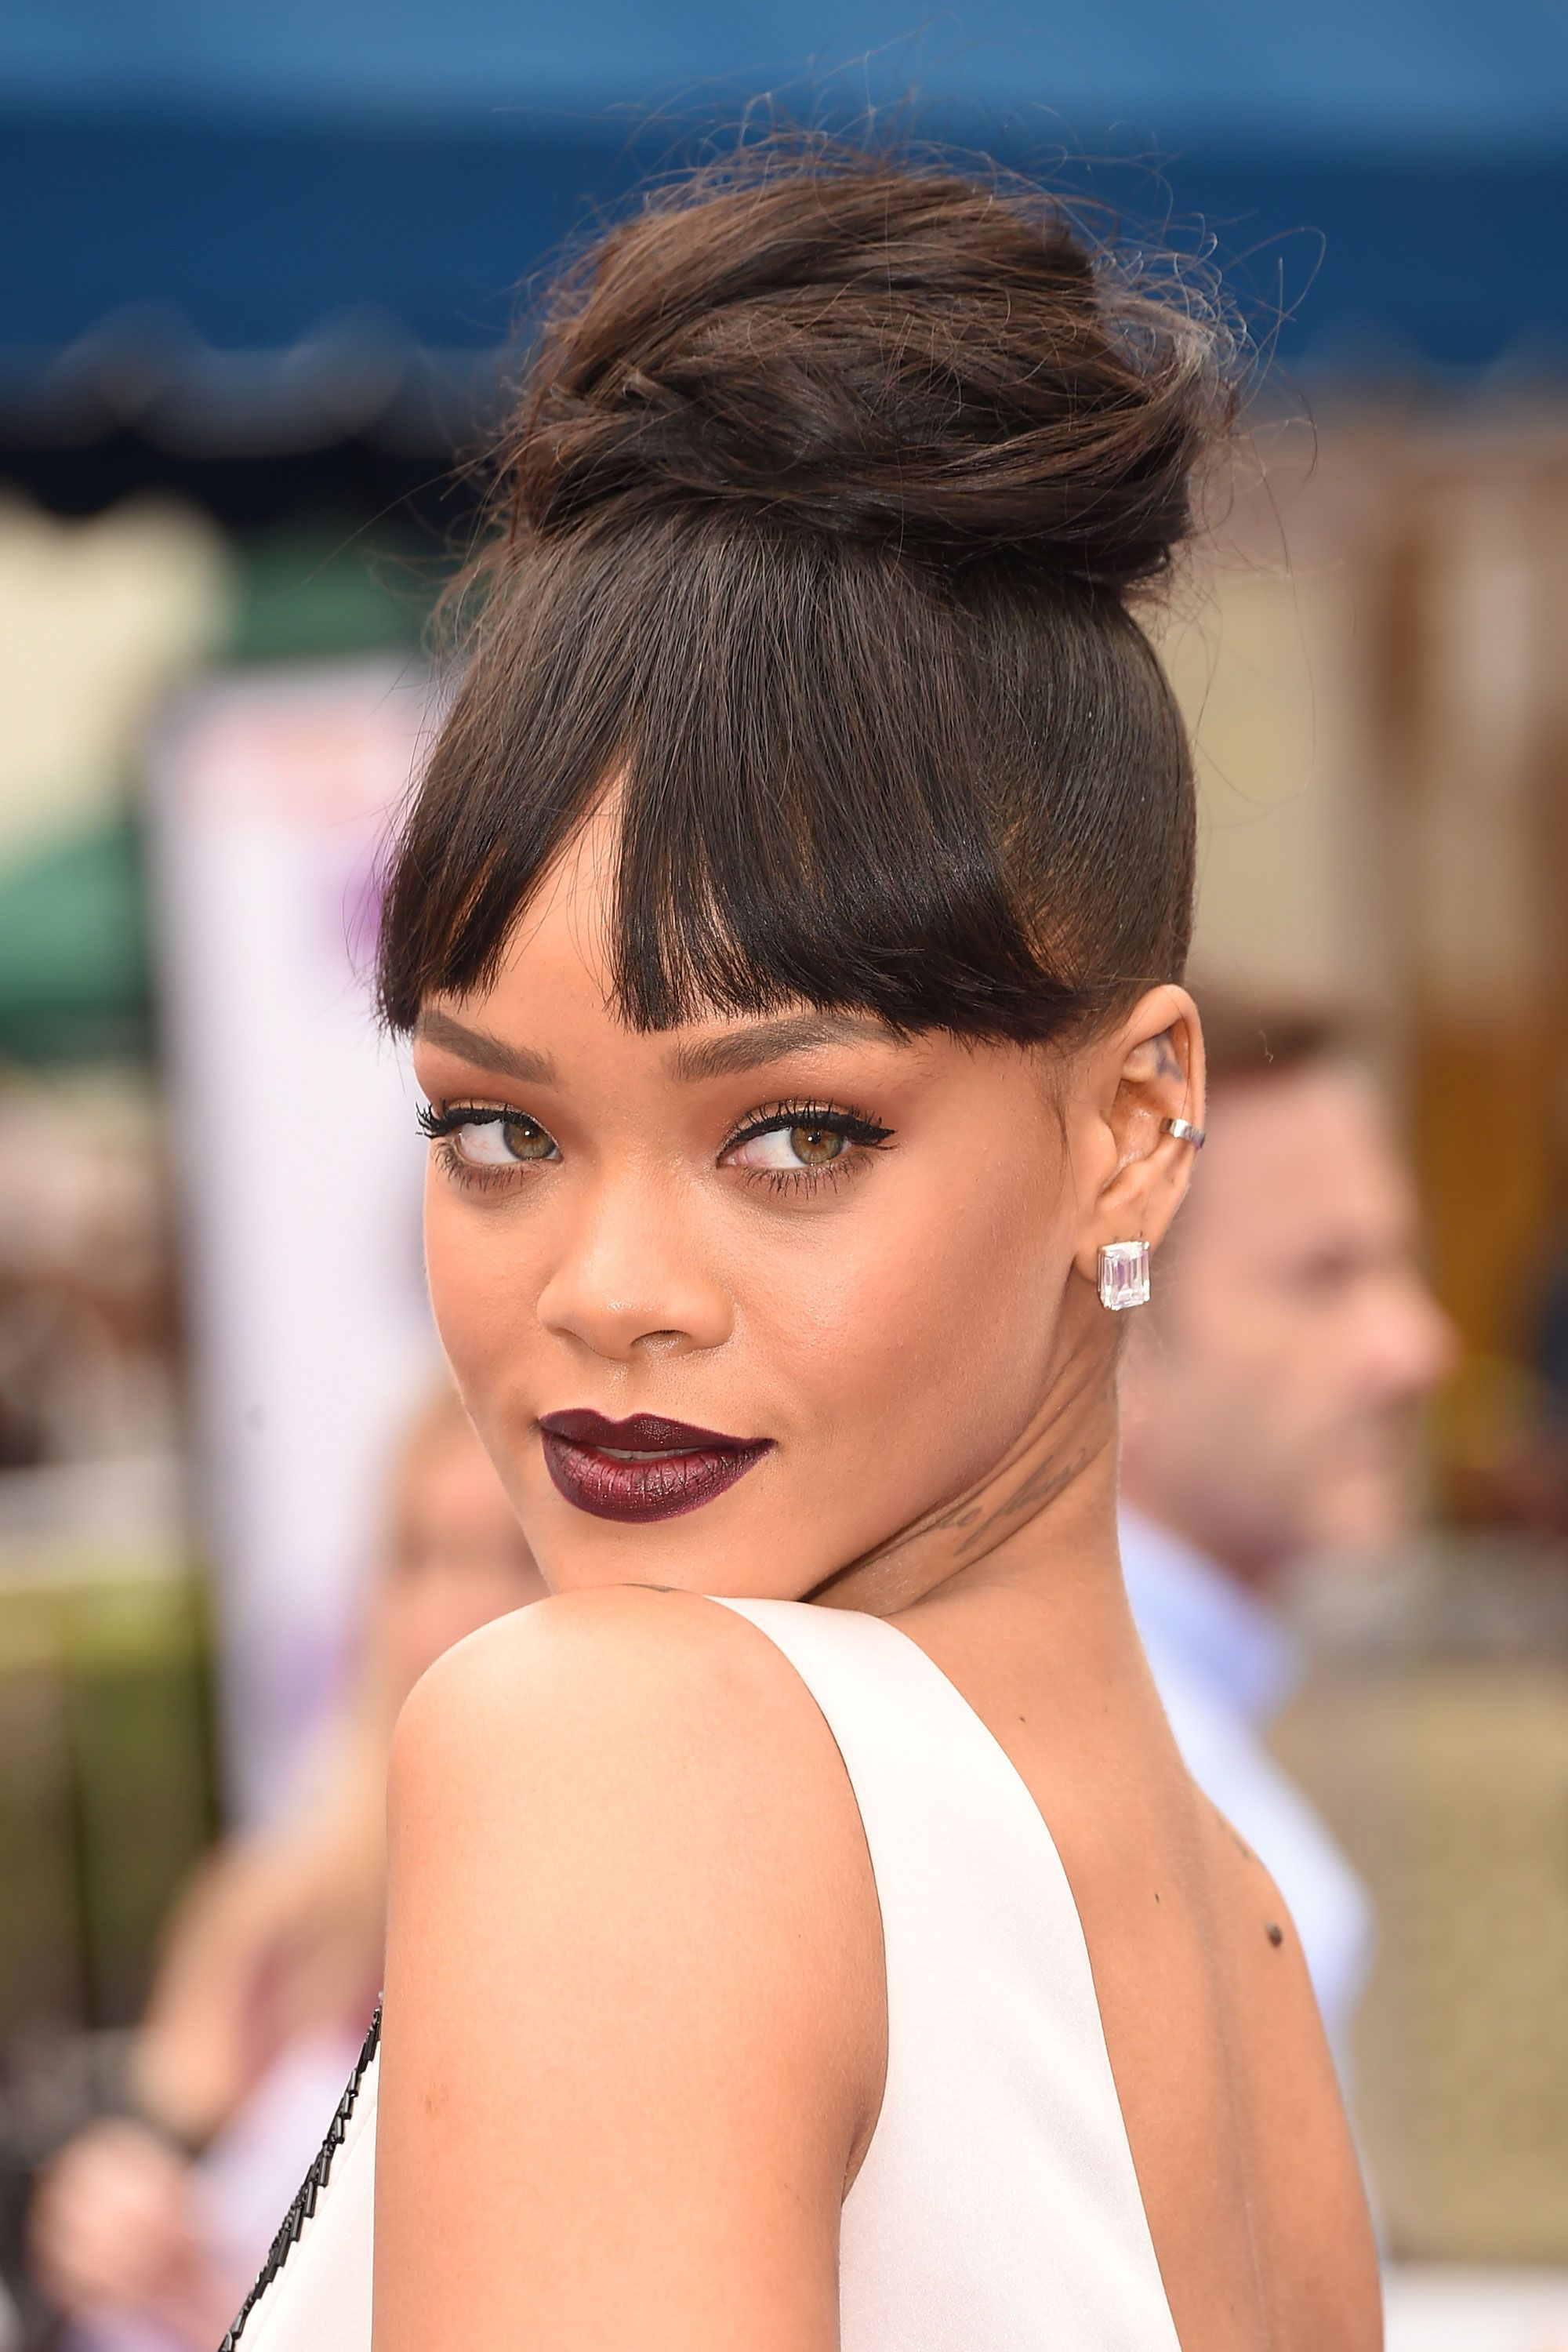 """RiRi continues to wow us with her <a target=""""_blank"""" href=""""http://www.elle.com/beauty/hair/news/g26013/the-best-beauty-looks-of-the-week-march-21/?slide=6"""">less is more approach to beauty</a>, and this time around she makes the case for a classic updo paired with an elegant burgundy lip."""